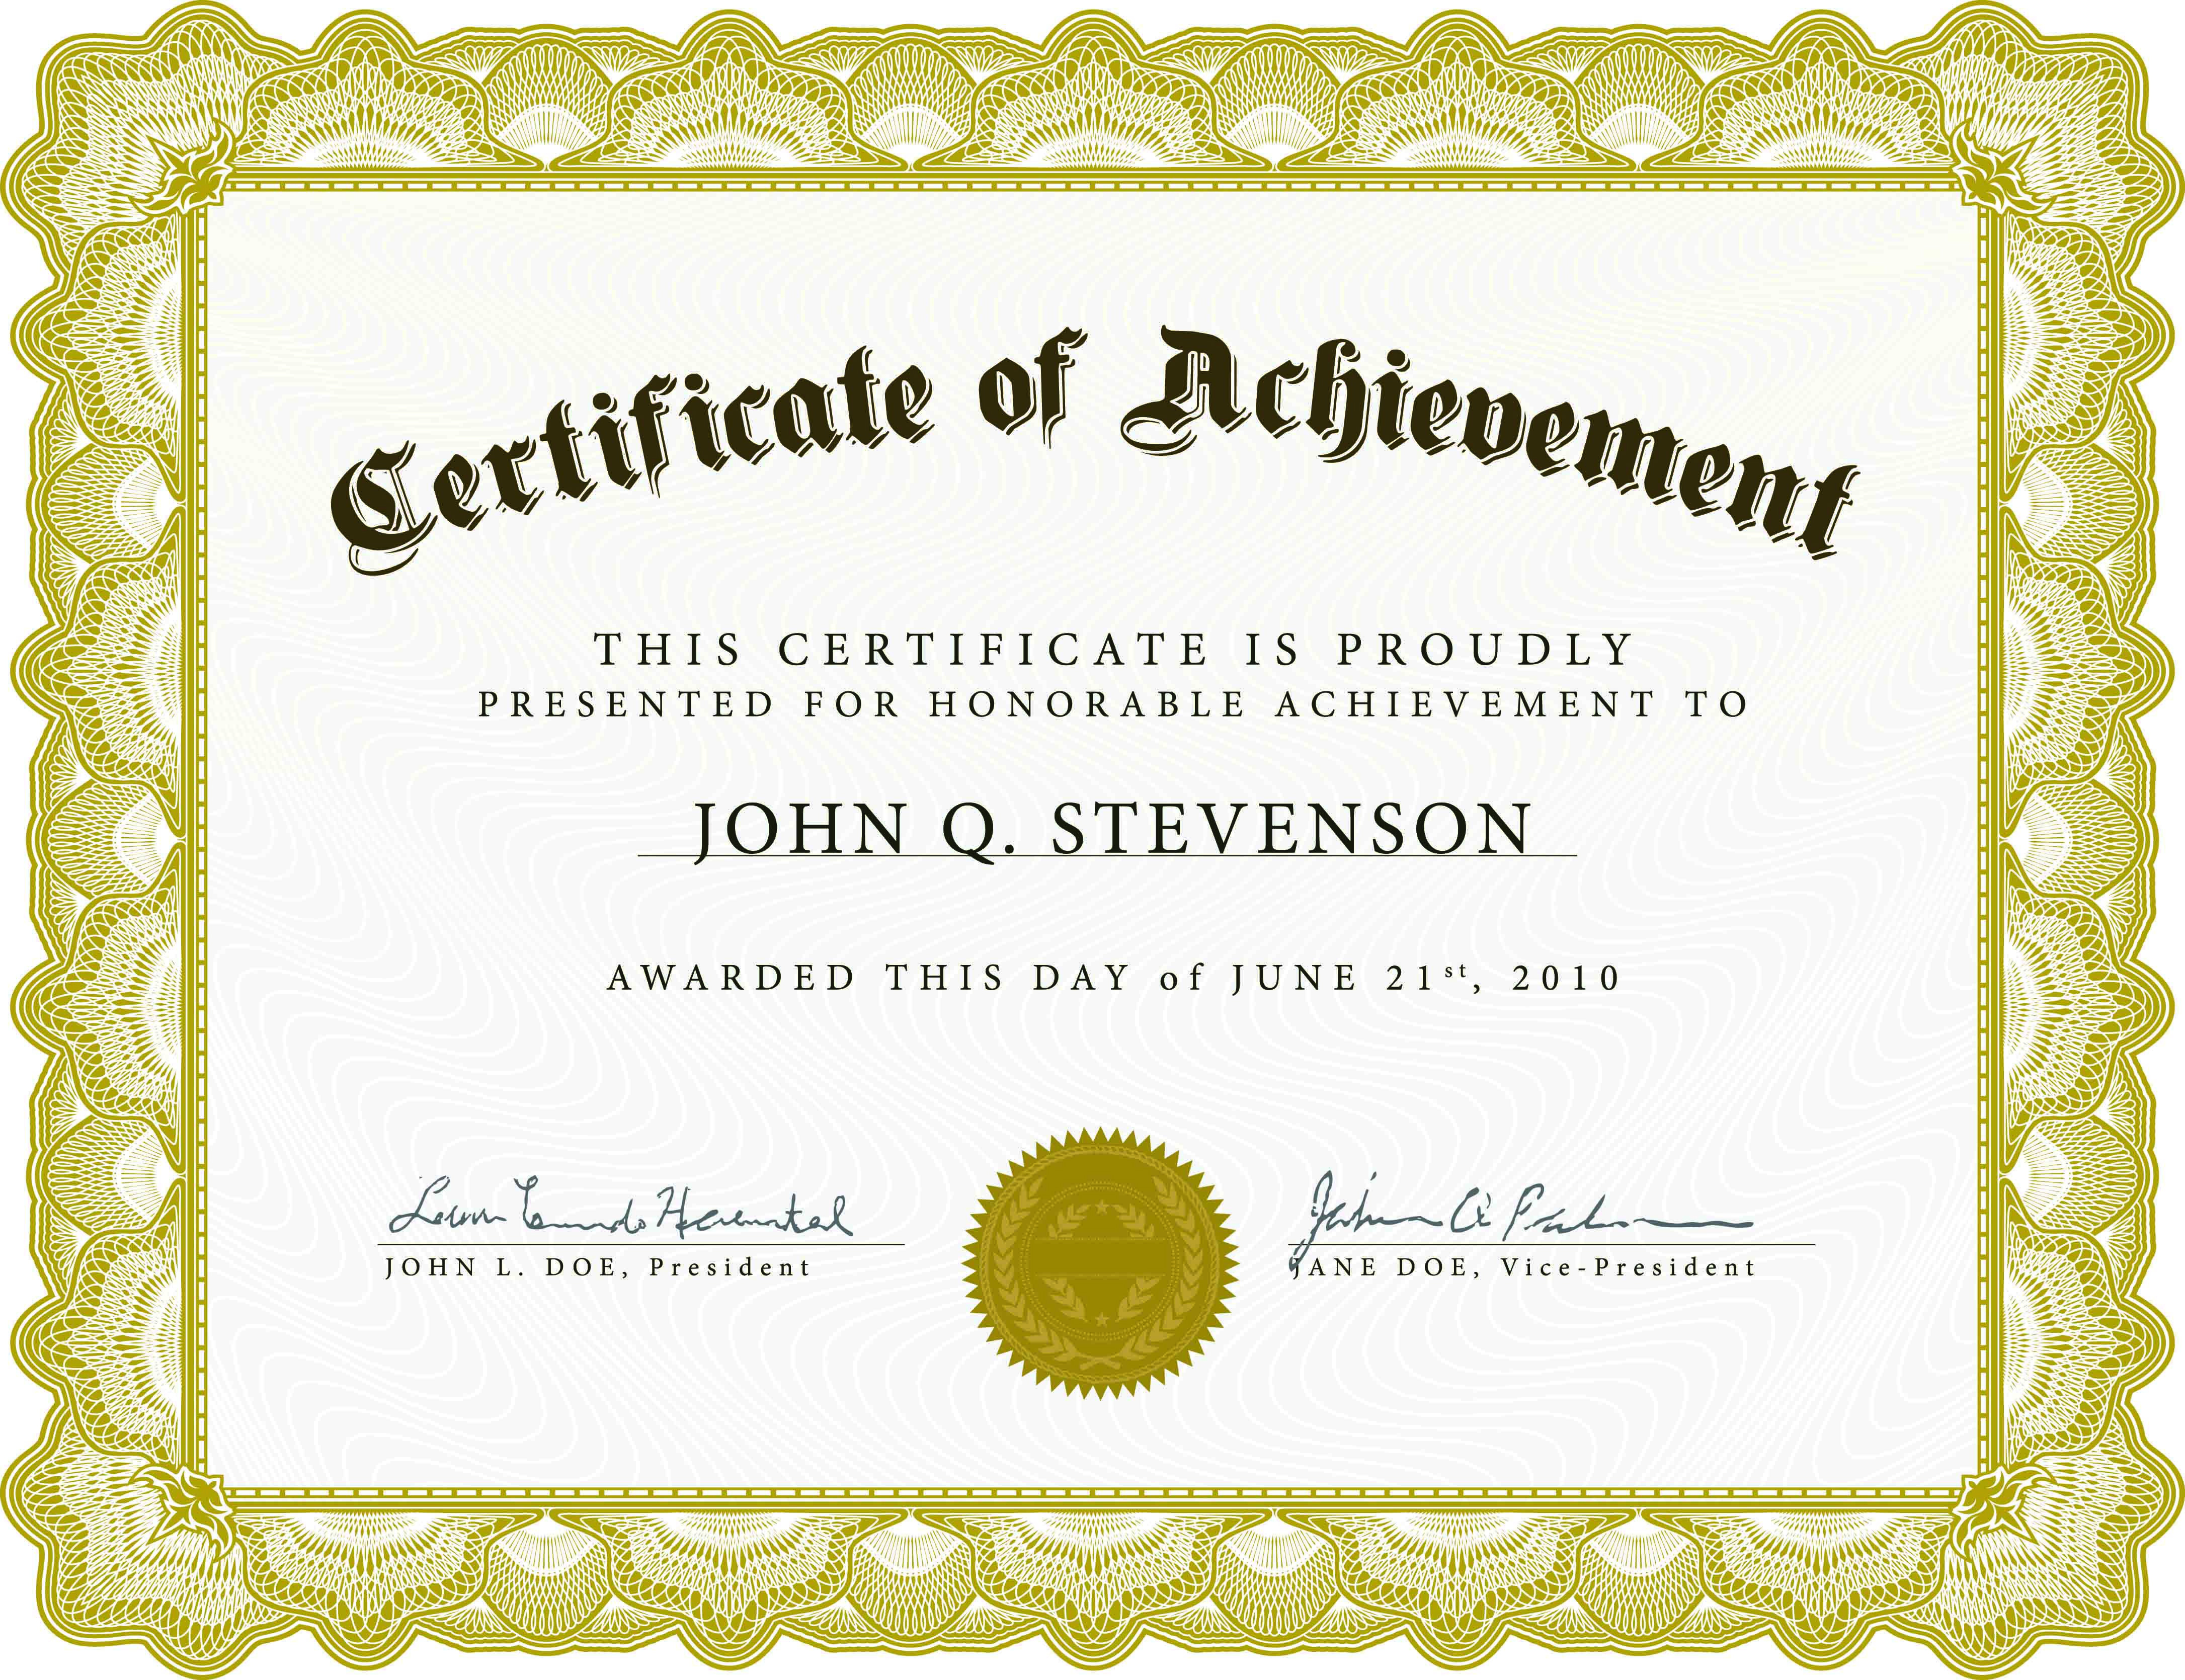 Download Blank Certificate Template X3Hr9Dto | St. Gabriel's Youth - Free Customizable Printable Certificates Of Achievement